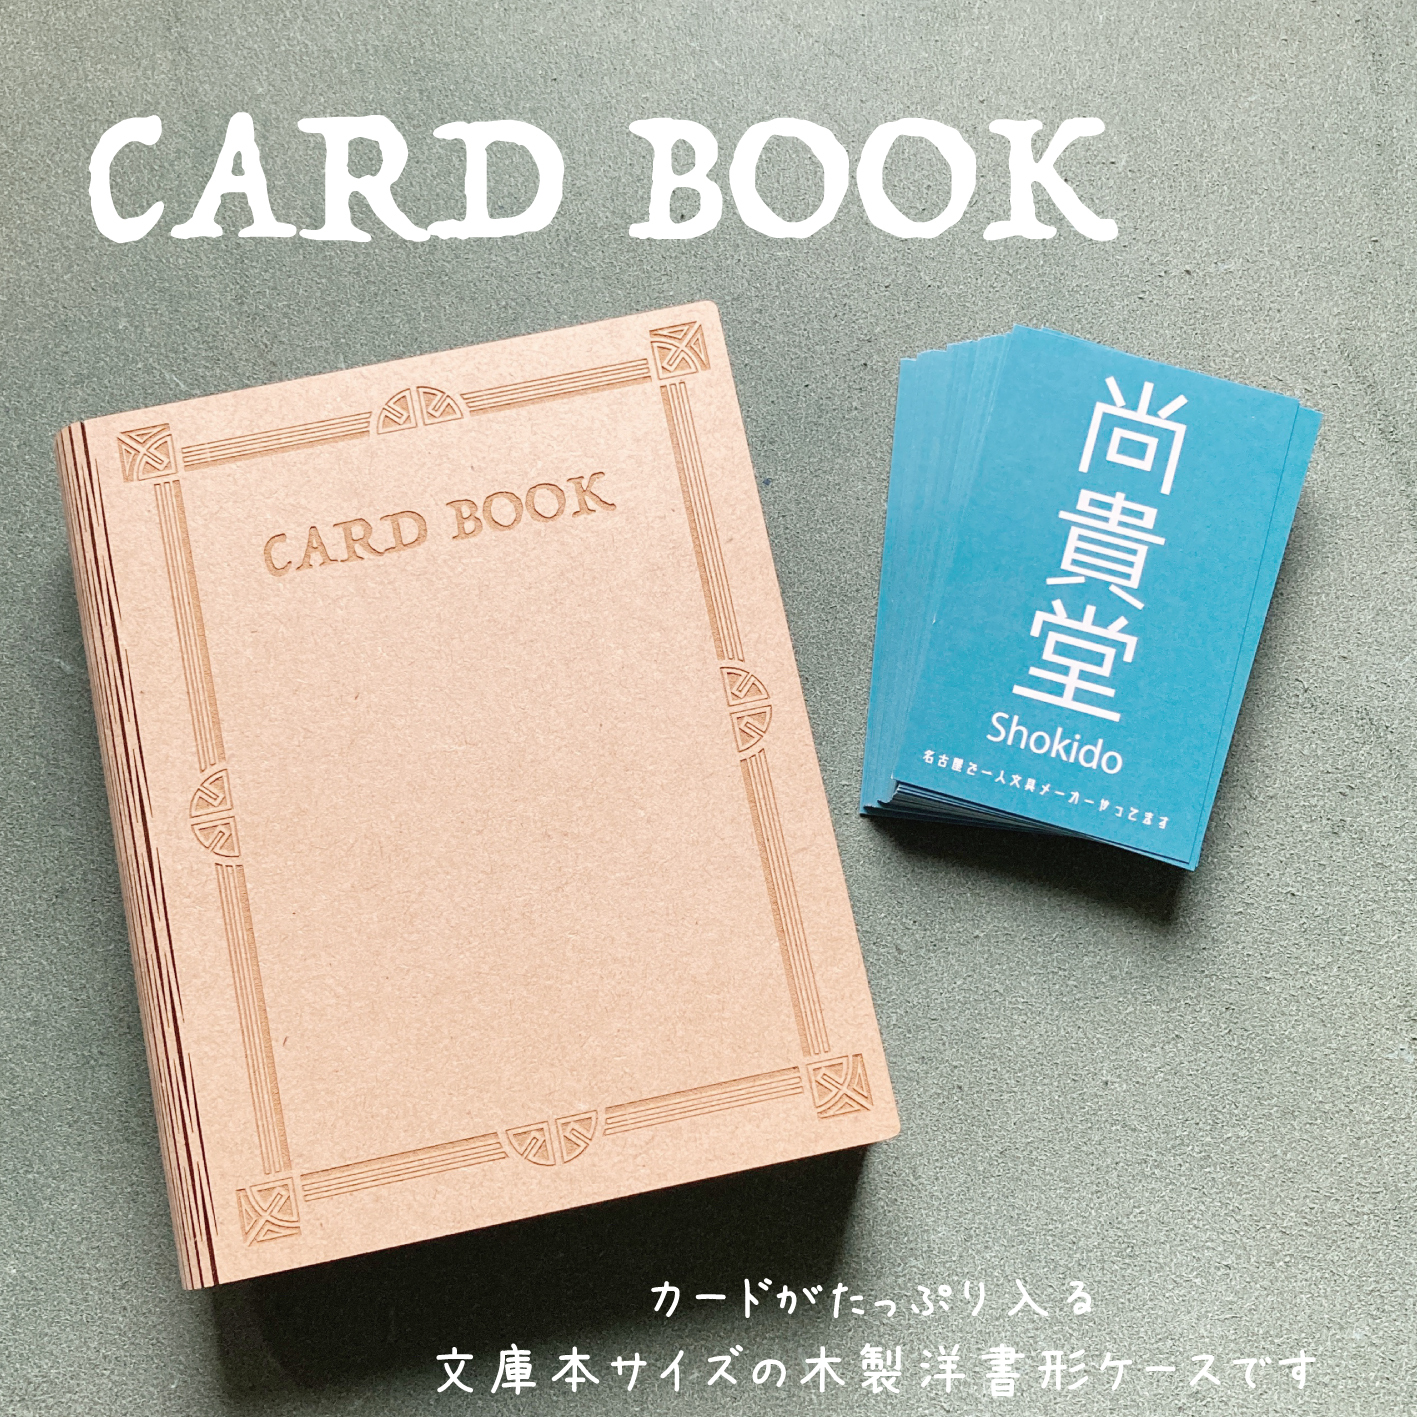 CARD BOOK for a lot